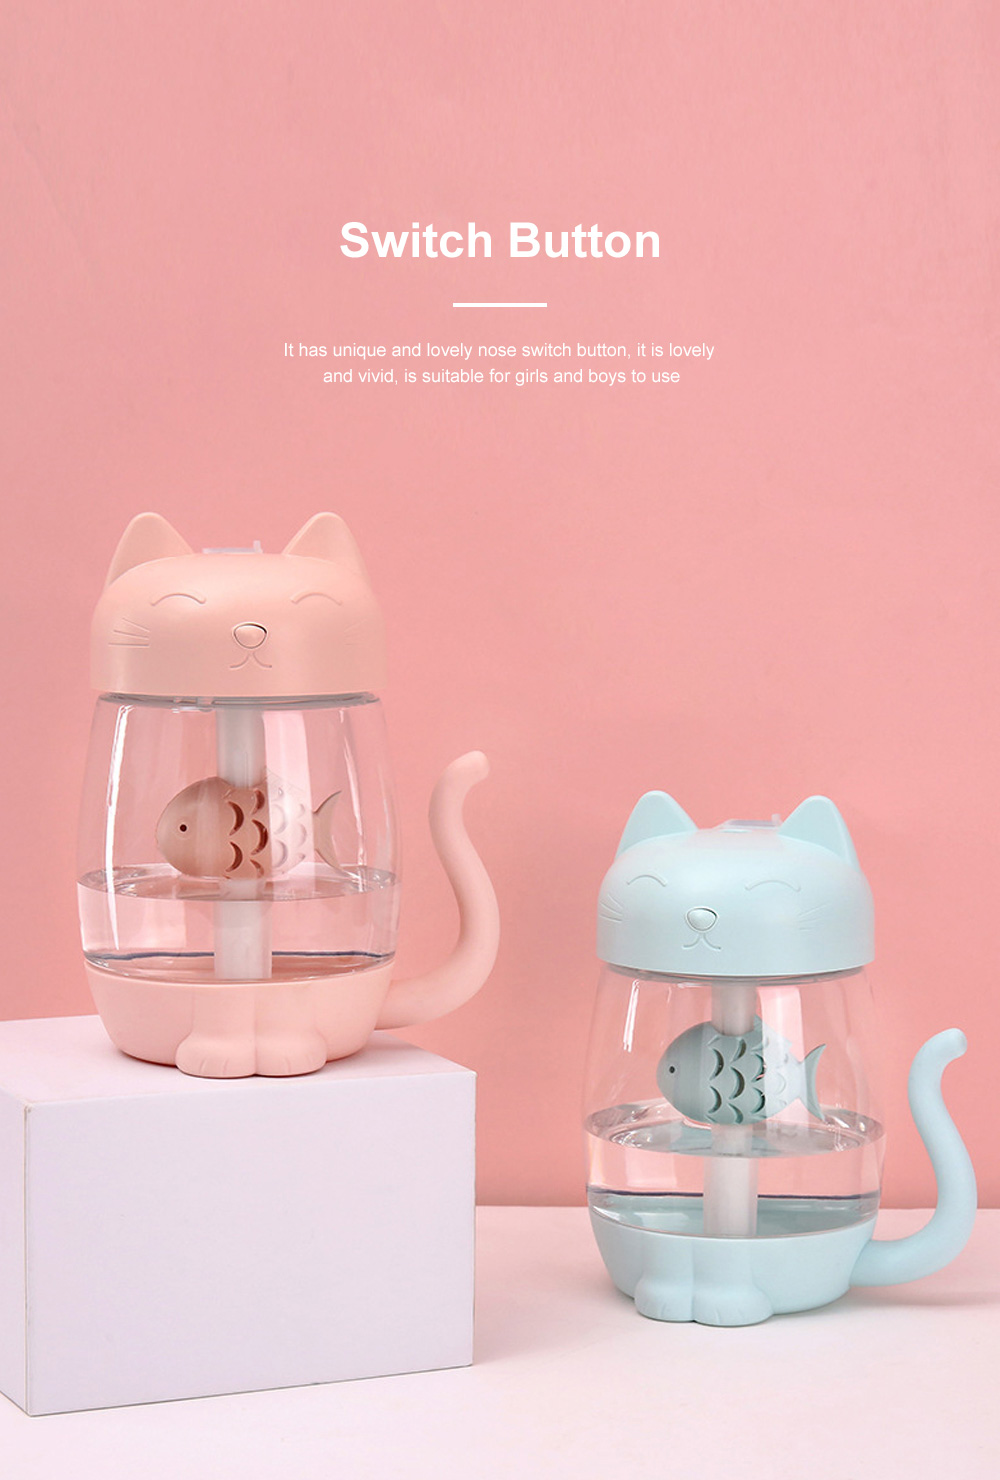 Lovely Cat Humidifier Portable Charging Creative Office Humidifier Three In One Usb Fan Desktop Atomizer Led Light Dry Protection 1